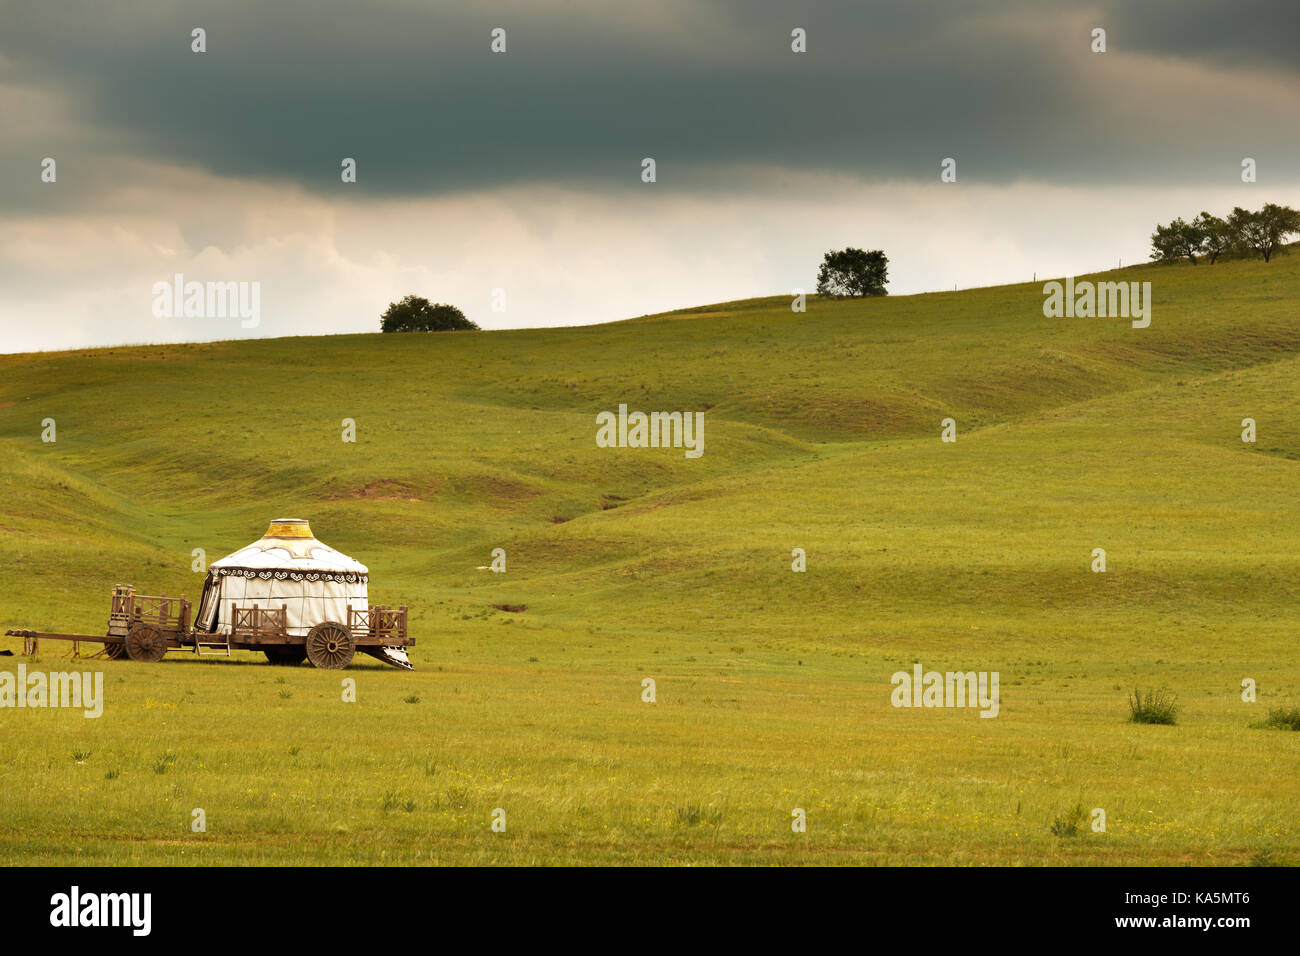 The grasslands and rivers of Inner Mongolia - Stock Image